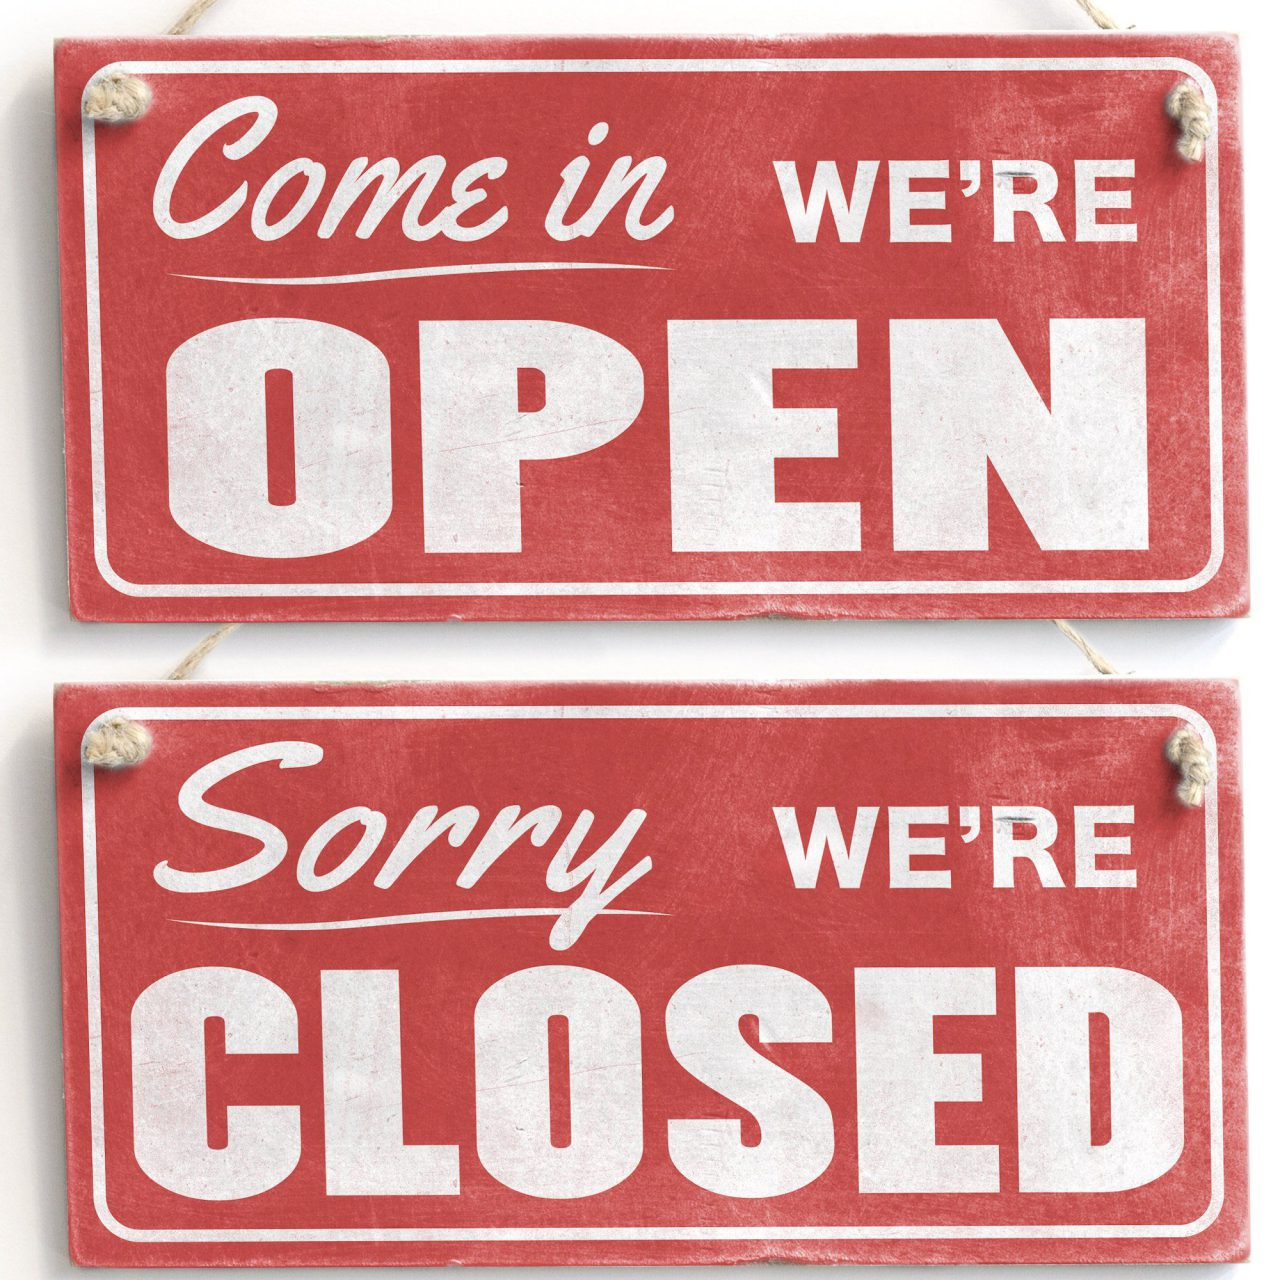 open_closed-1280x1280.jpg